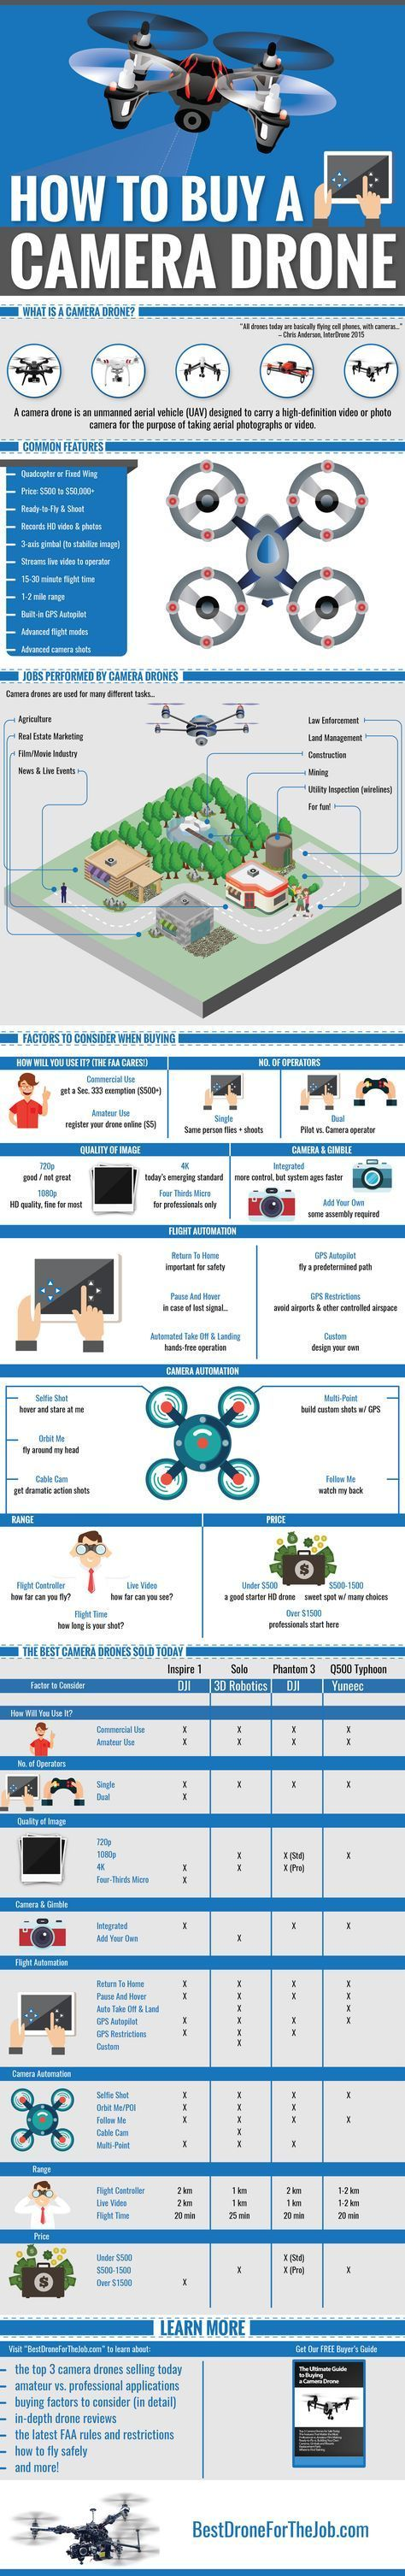 How To Buy A Camera Drone in 2016  - 8 factors to consider  - 10 ways camera drones are used today  - 4 best ready-to-fly camera drones, compared